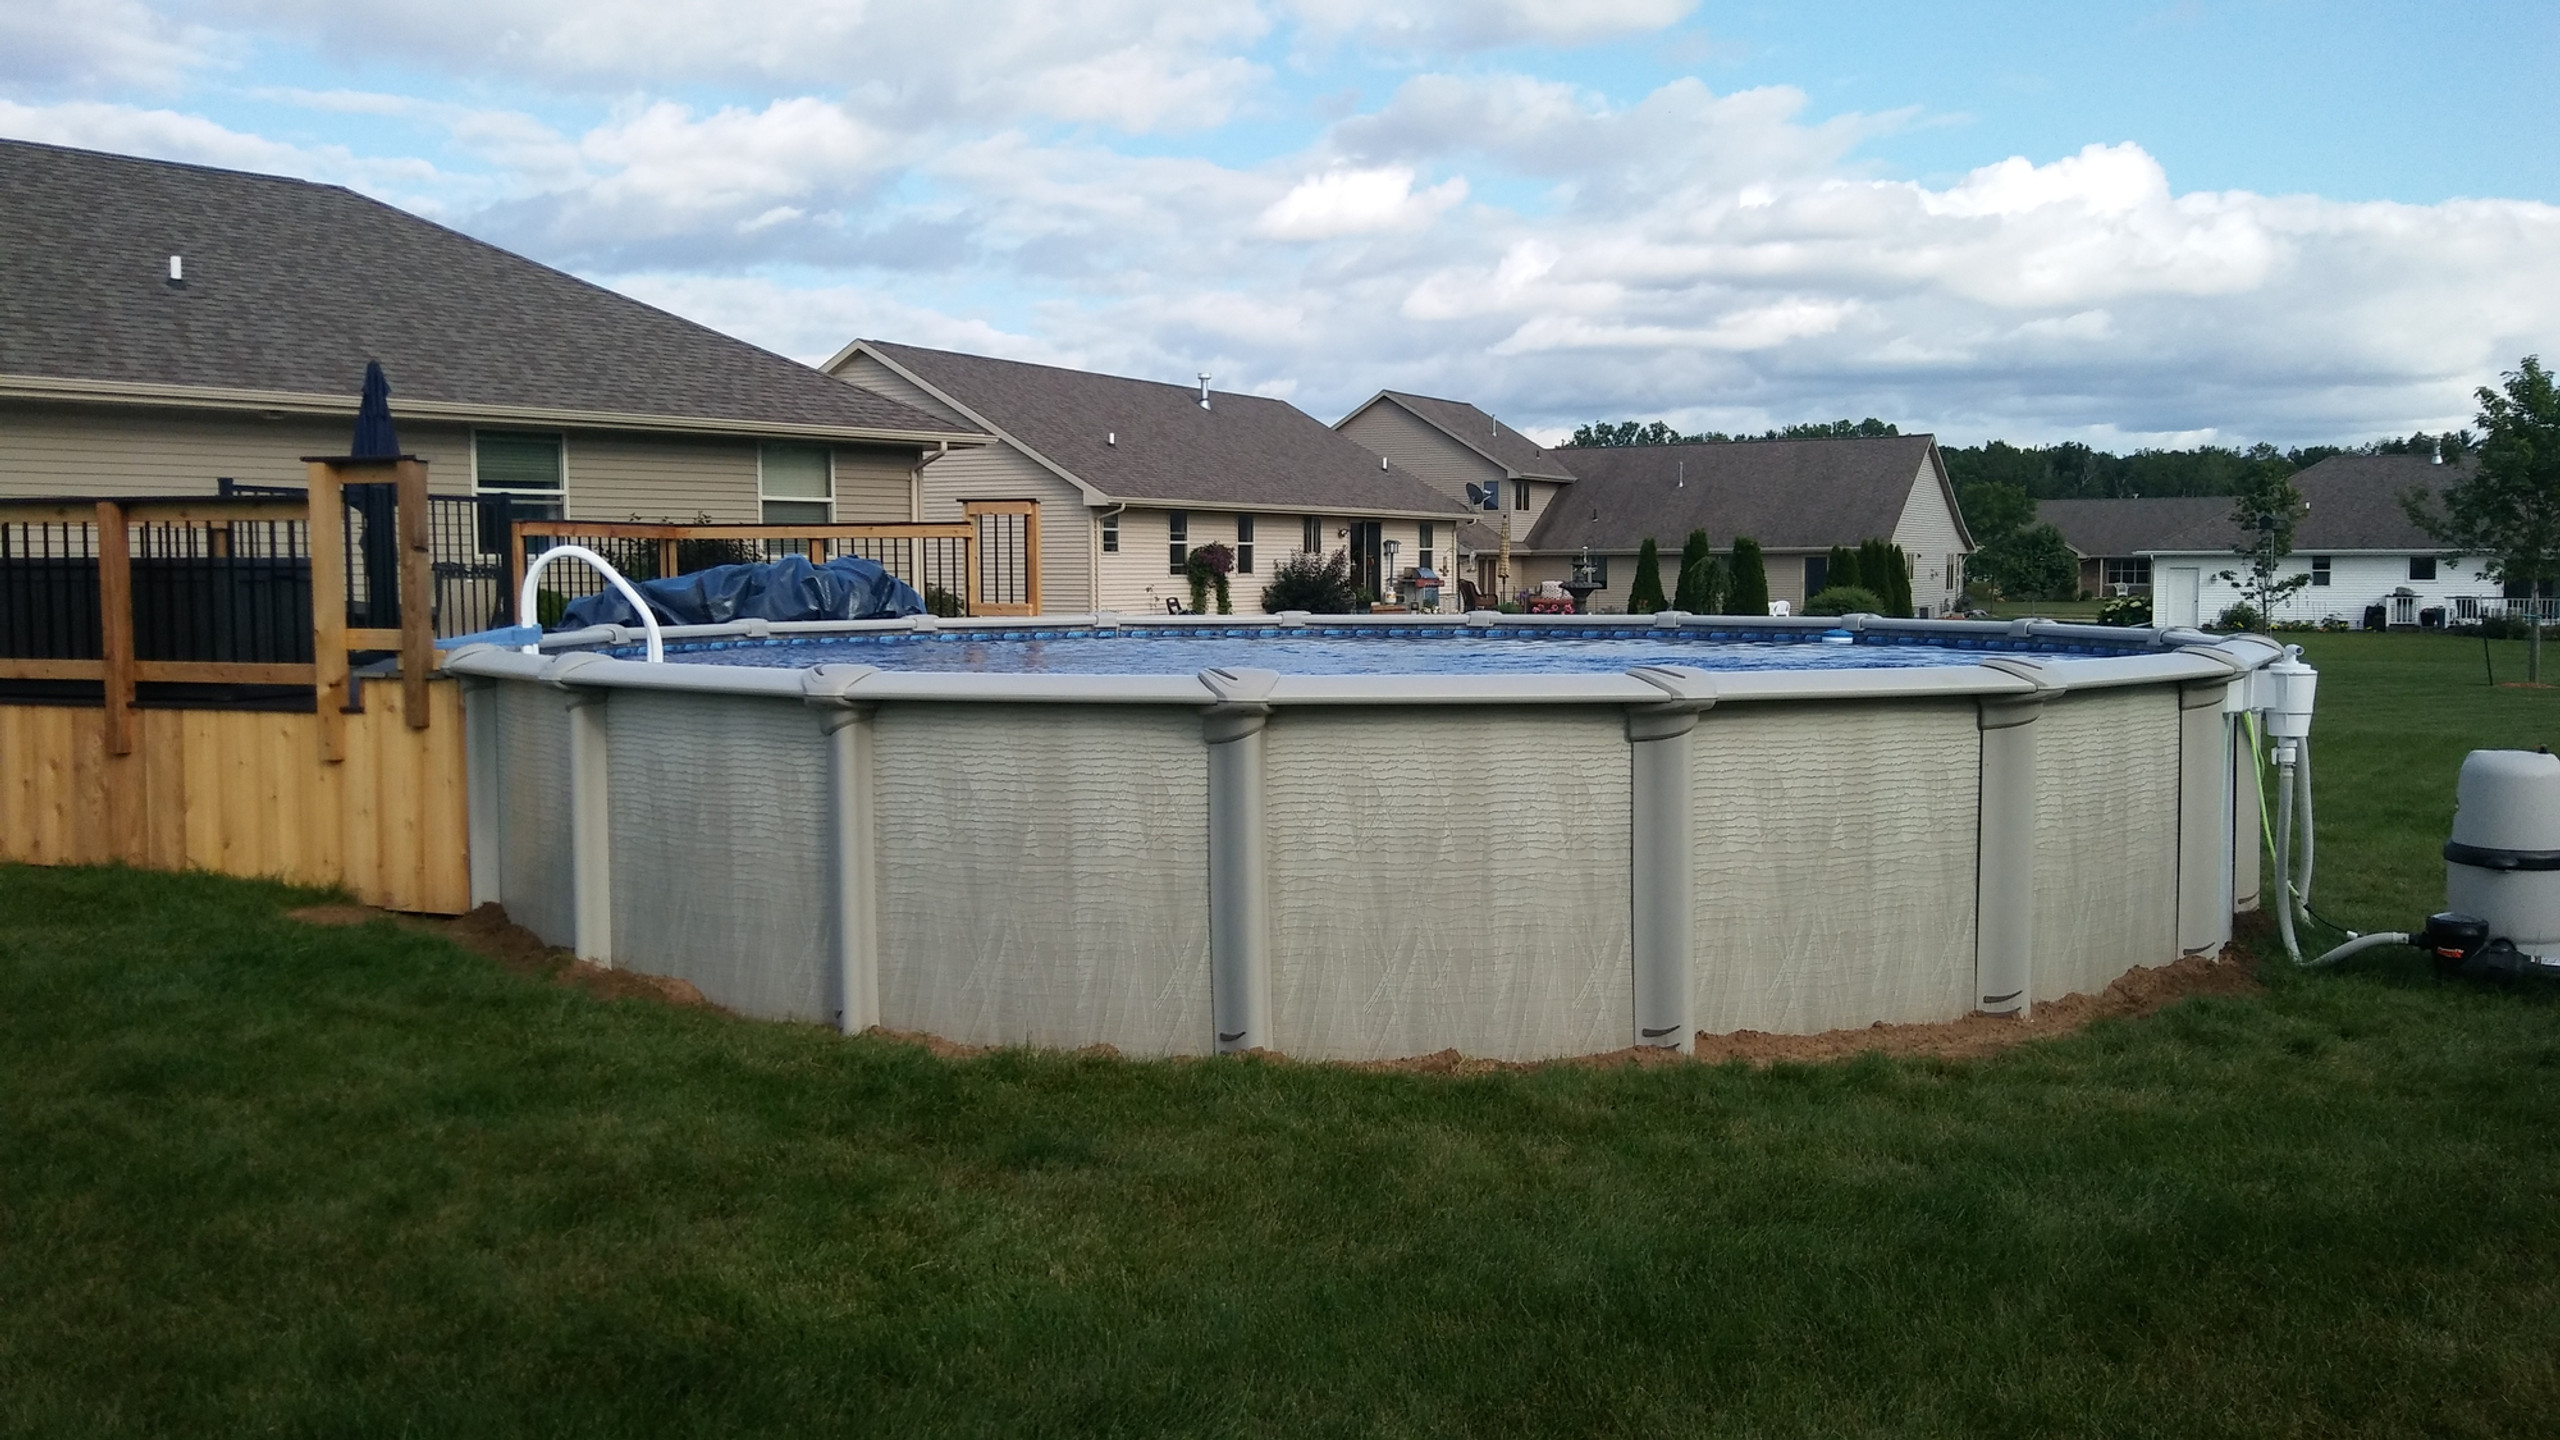 This is the 27' Round Above Ground Pool from Pool Pros. Pool Pros built this pool in Howard WI in 2017.